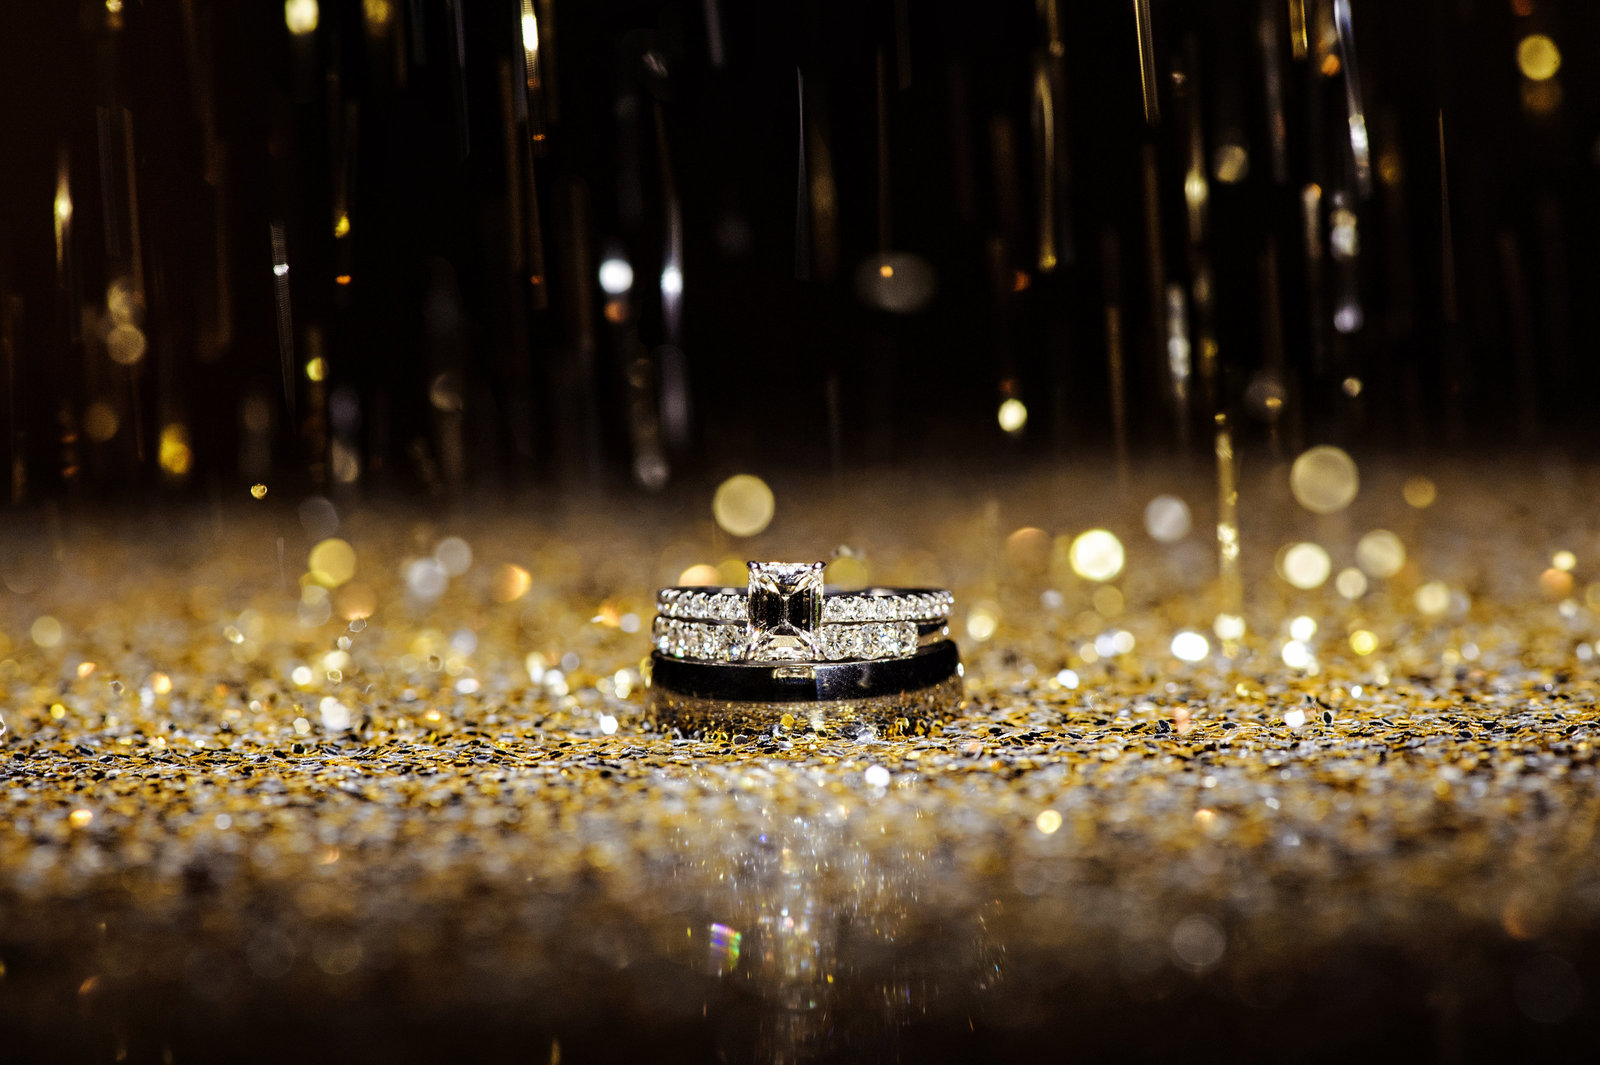 Wedding rings sprinkled with gold glitter at the Chelsea Hotel Wedding.